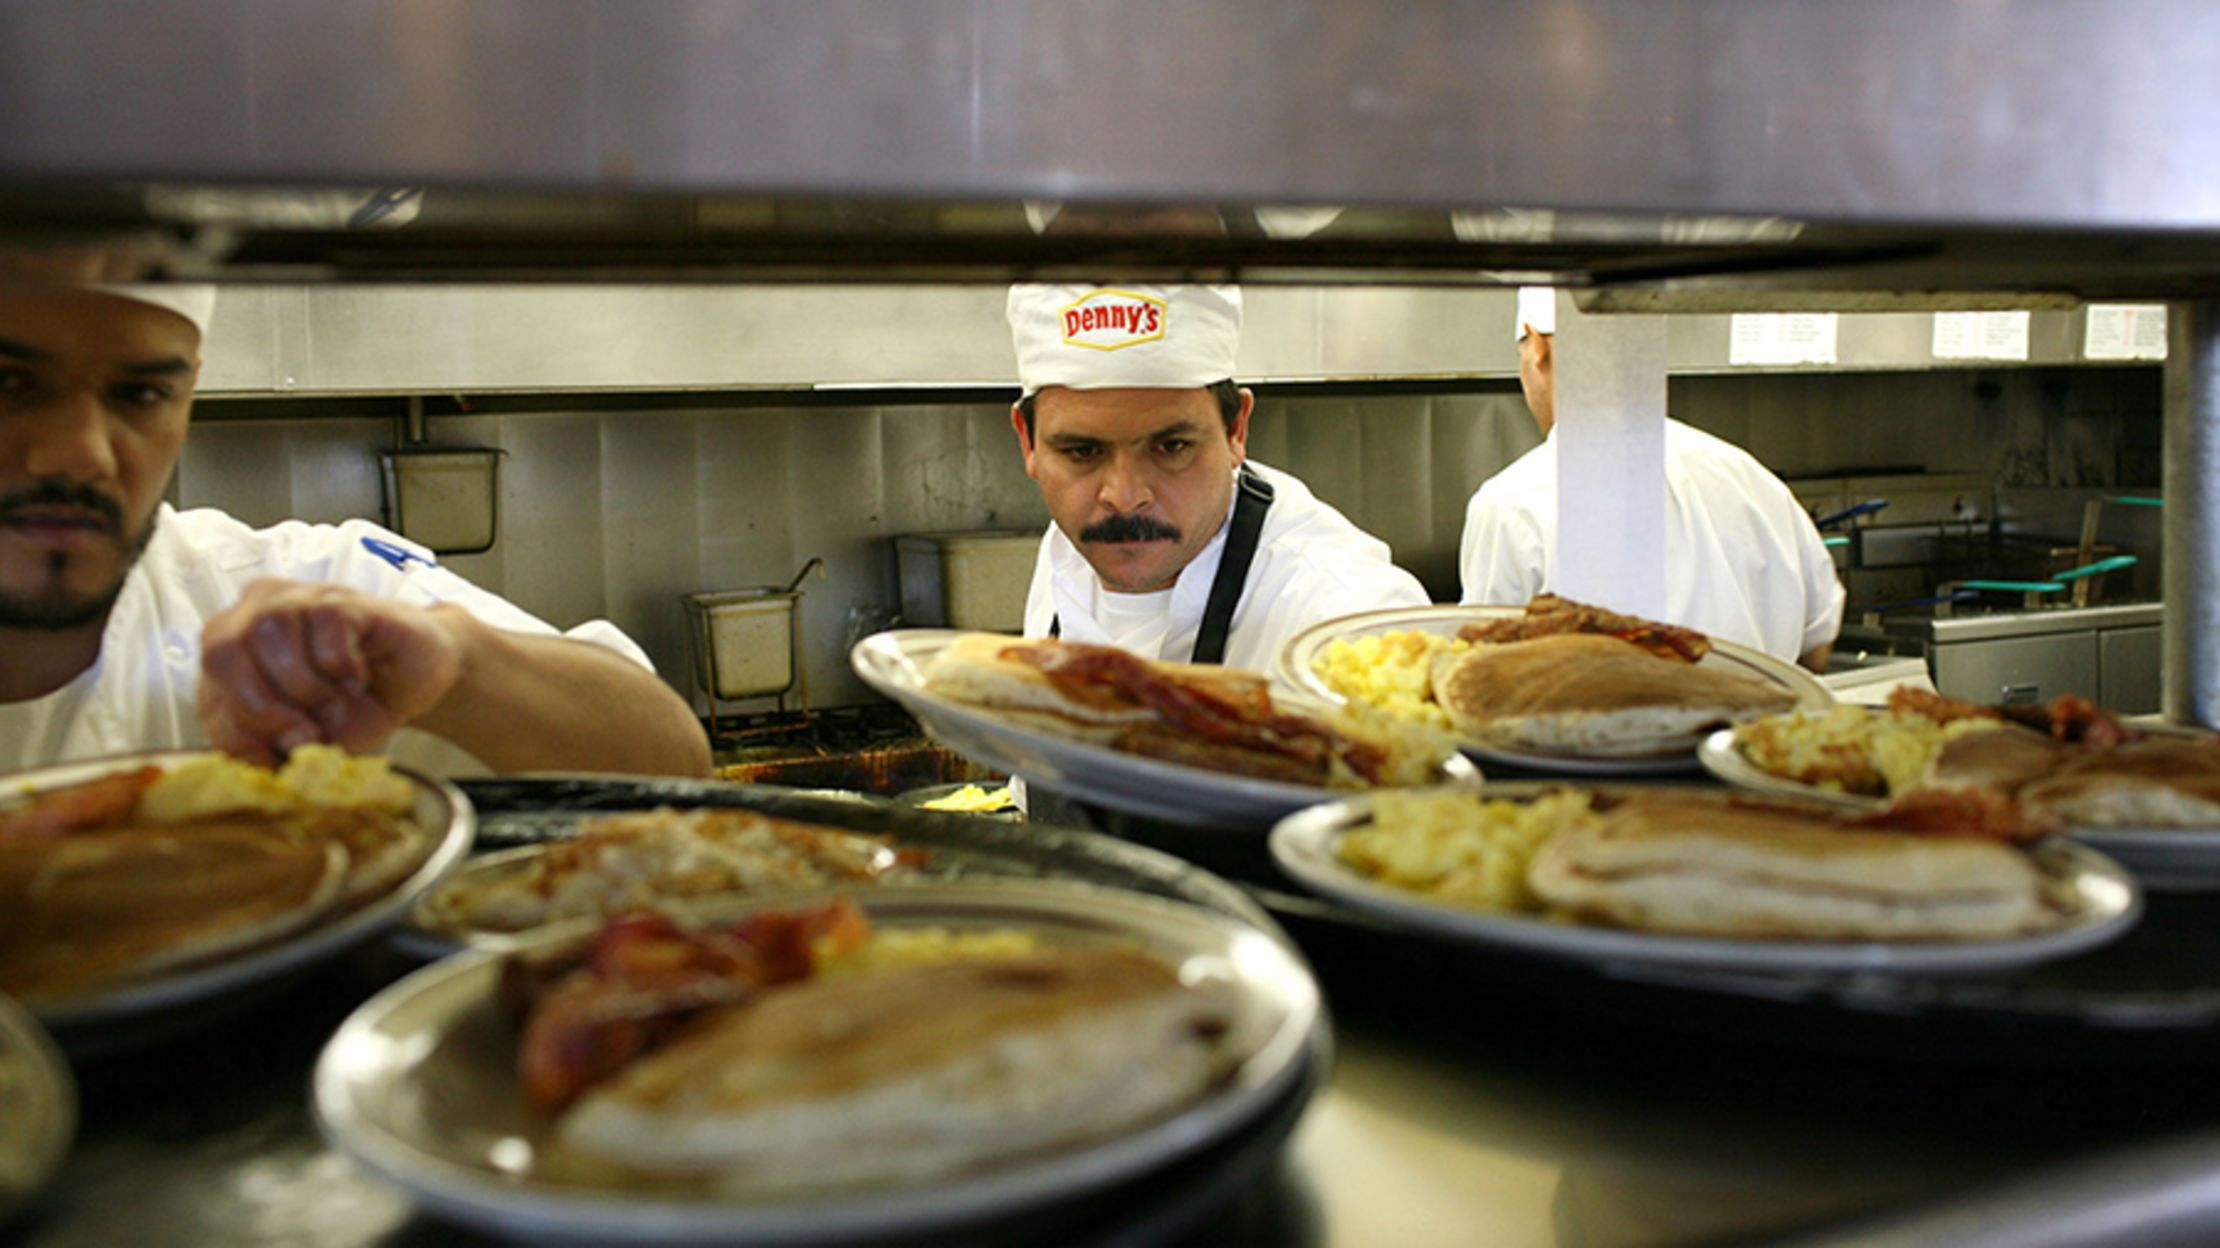 10 Things You Might Not Know About Denny's | Mental Floss